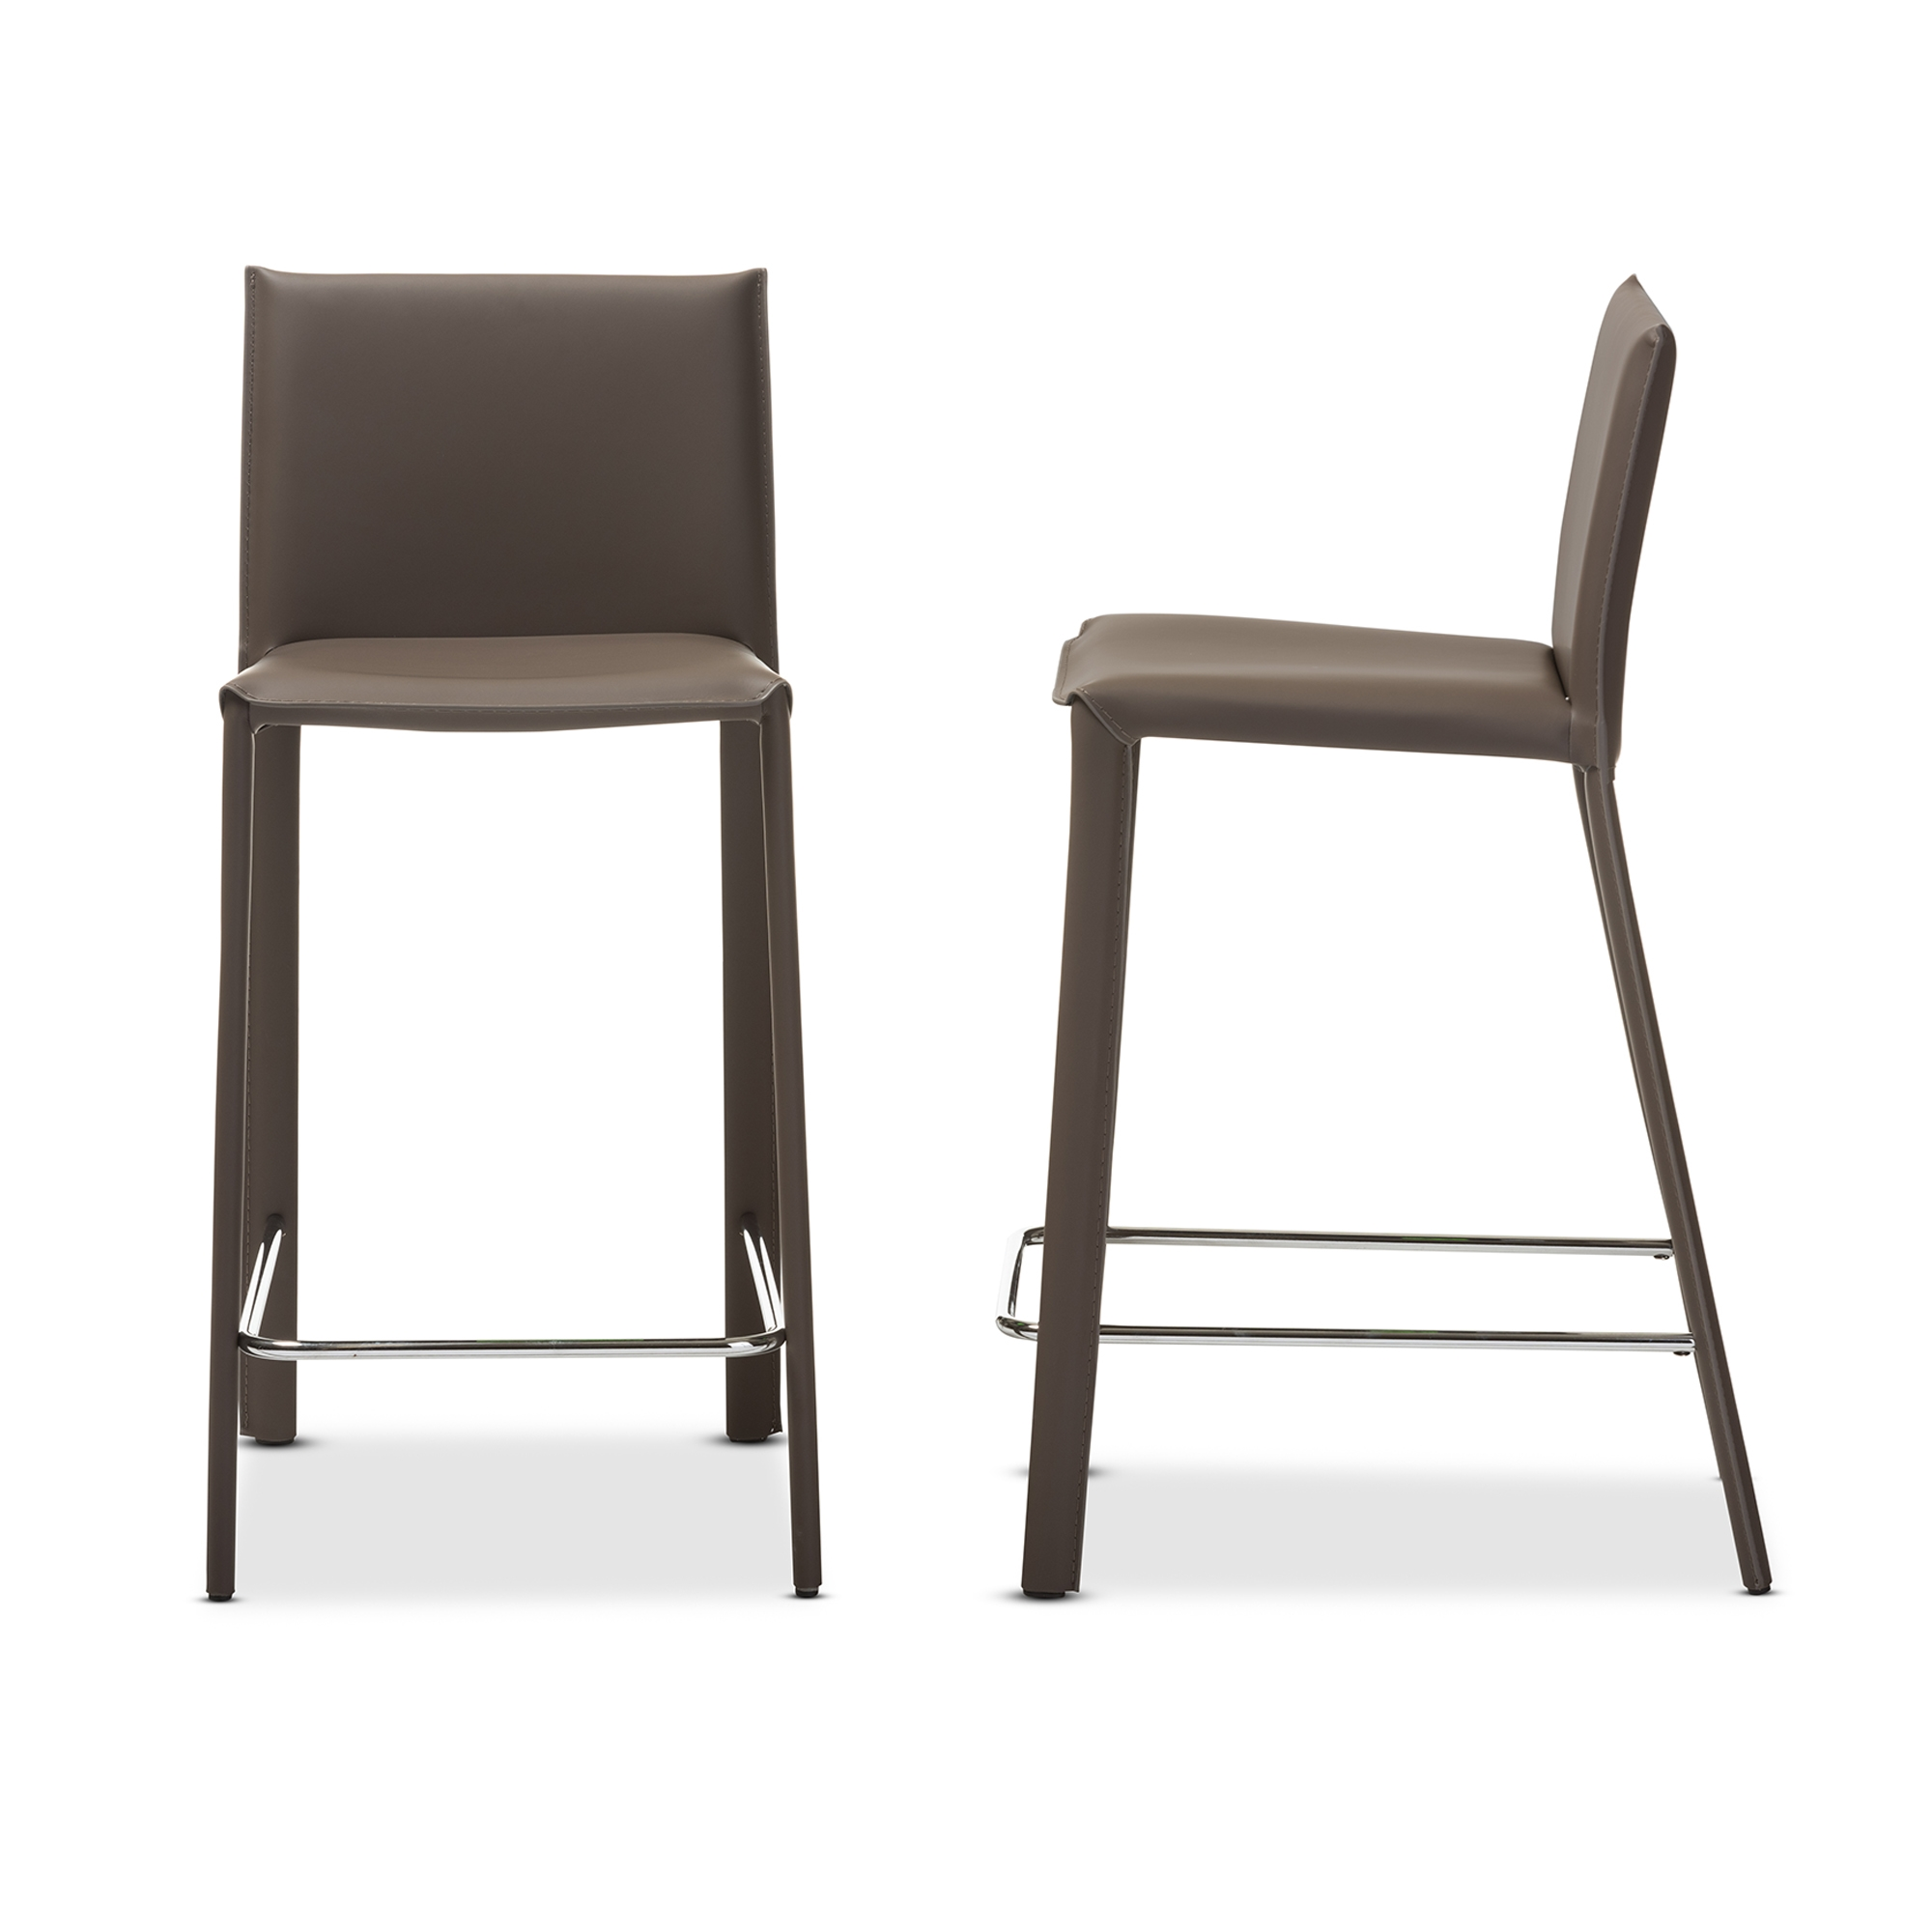 counter height stools. Baxton Studio Crawford Modern And Contemporary Taupe Leather Upholstered Counter Height Stool - ALC-1822A Stools C